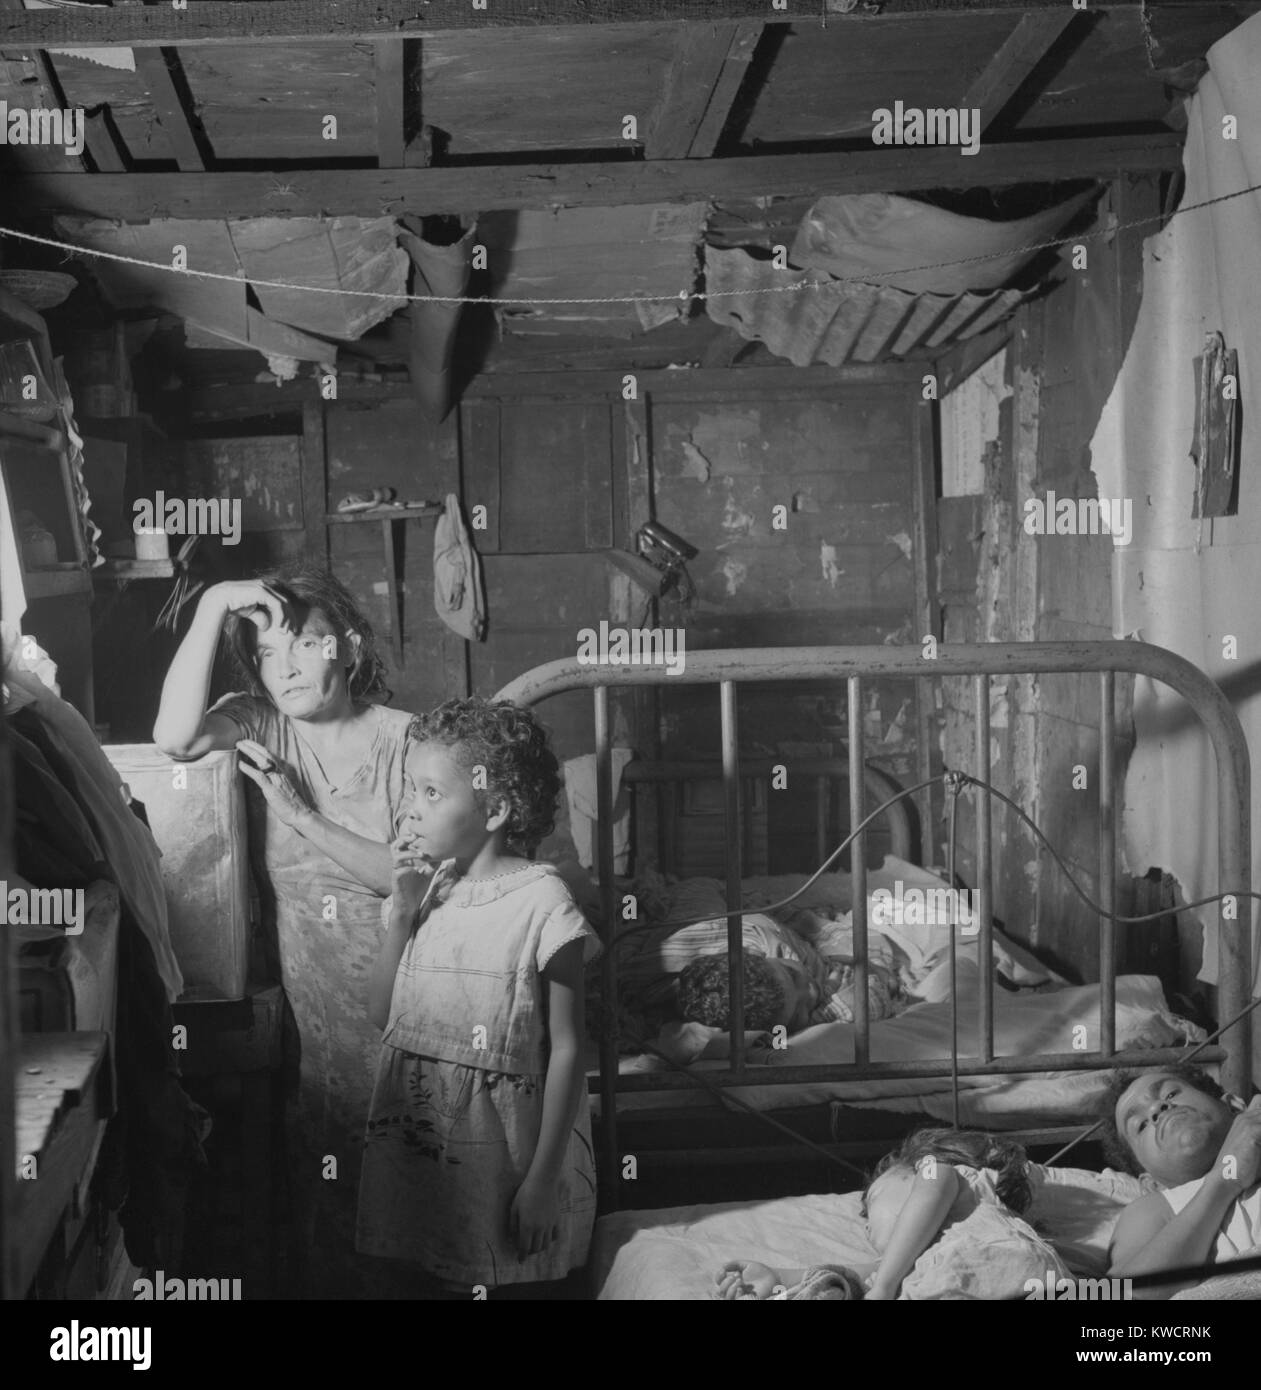 Five members of a family in a small bedroom of a worker's shack. San Juan, Puerto Rico. Jan. 1938. - (BSLOC - Stock Image